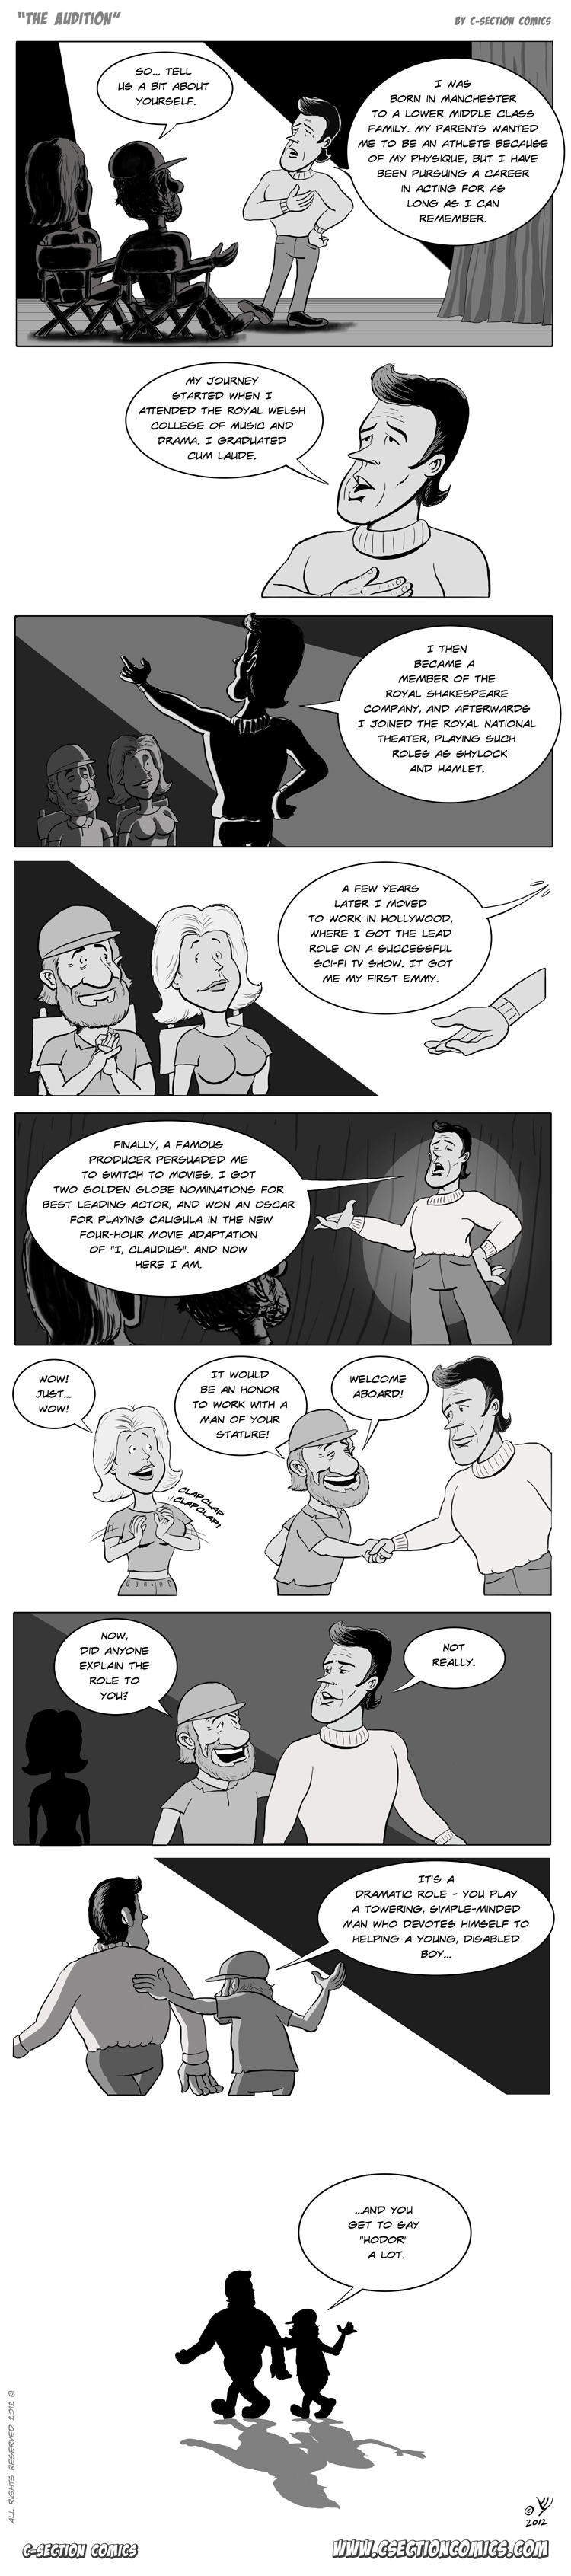 The Audition by C-Section Comics